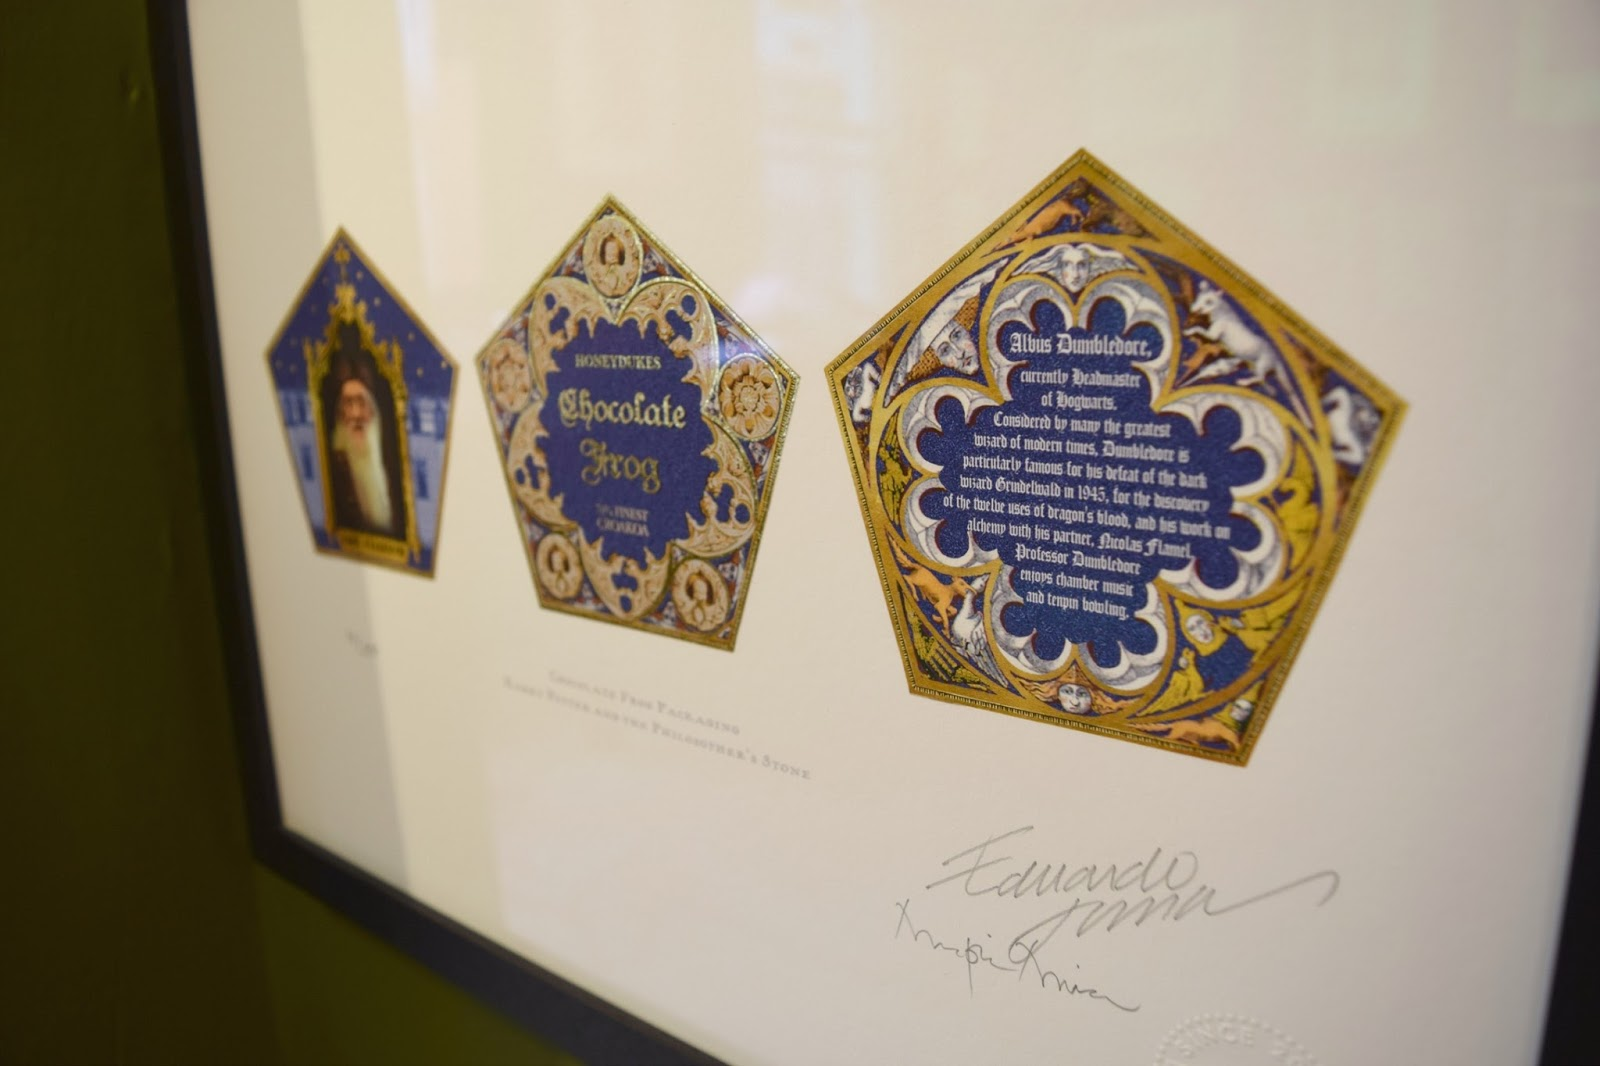 chocolate frog card and packaging designed by MinaLima for the Harry Potter films